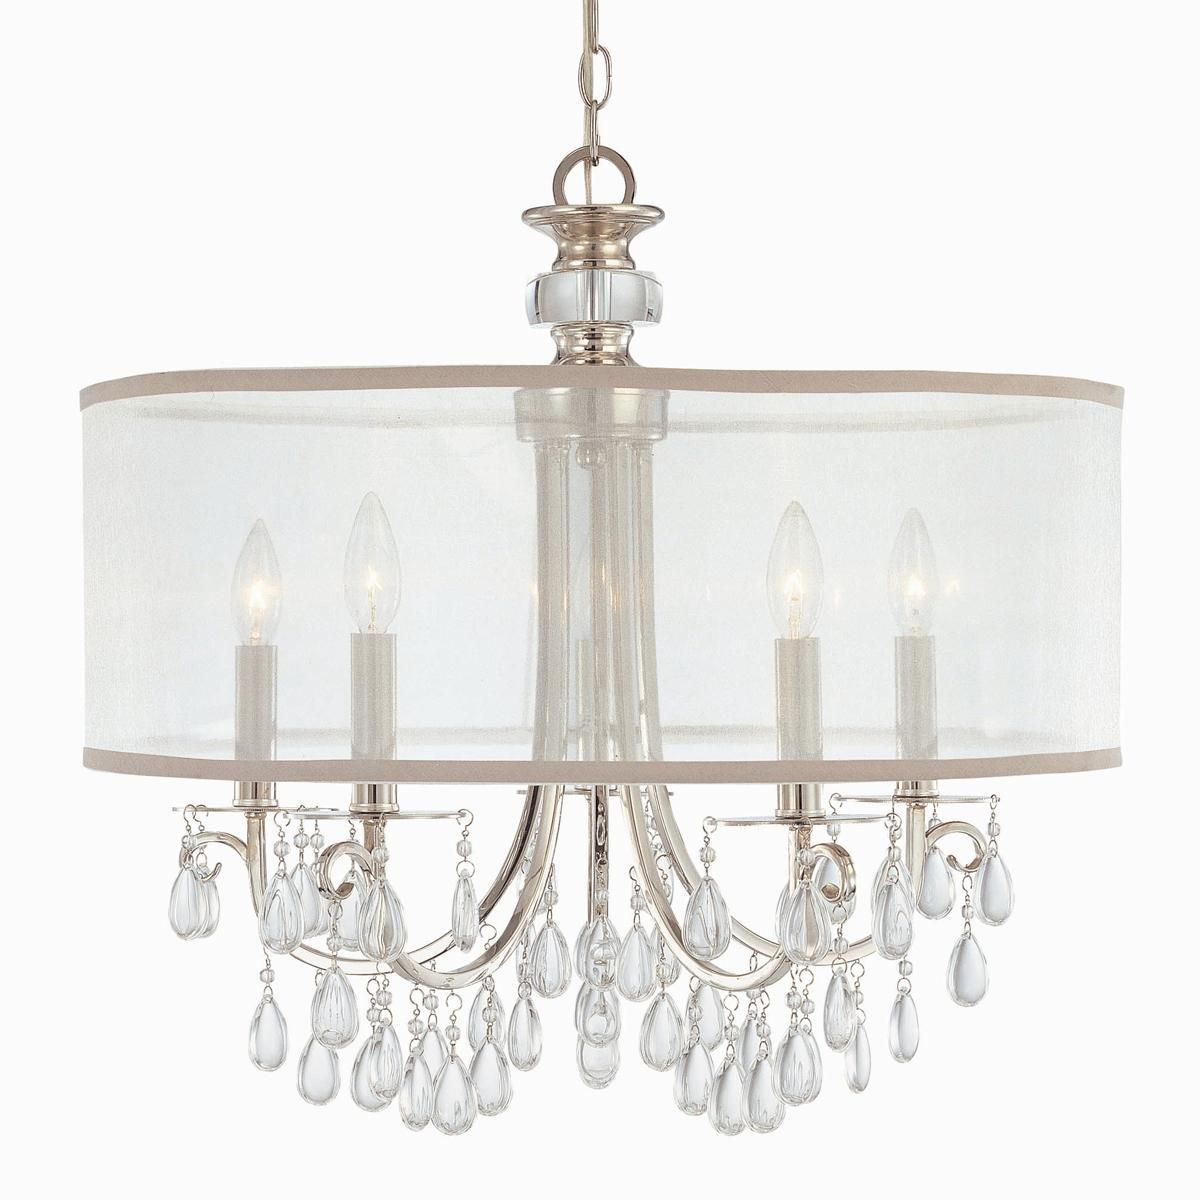 Modern Glam Shaded Crystal Chandelier - 5 Light | Crystal ...